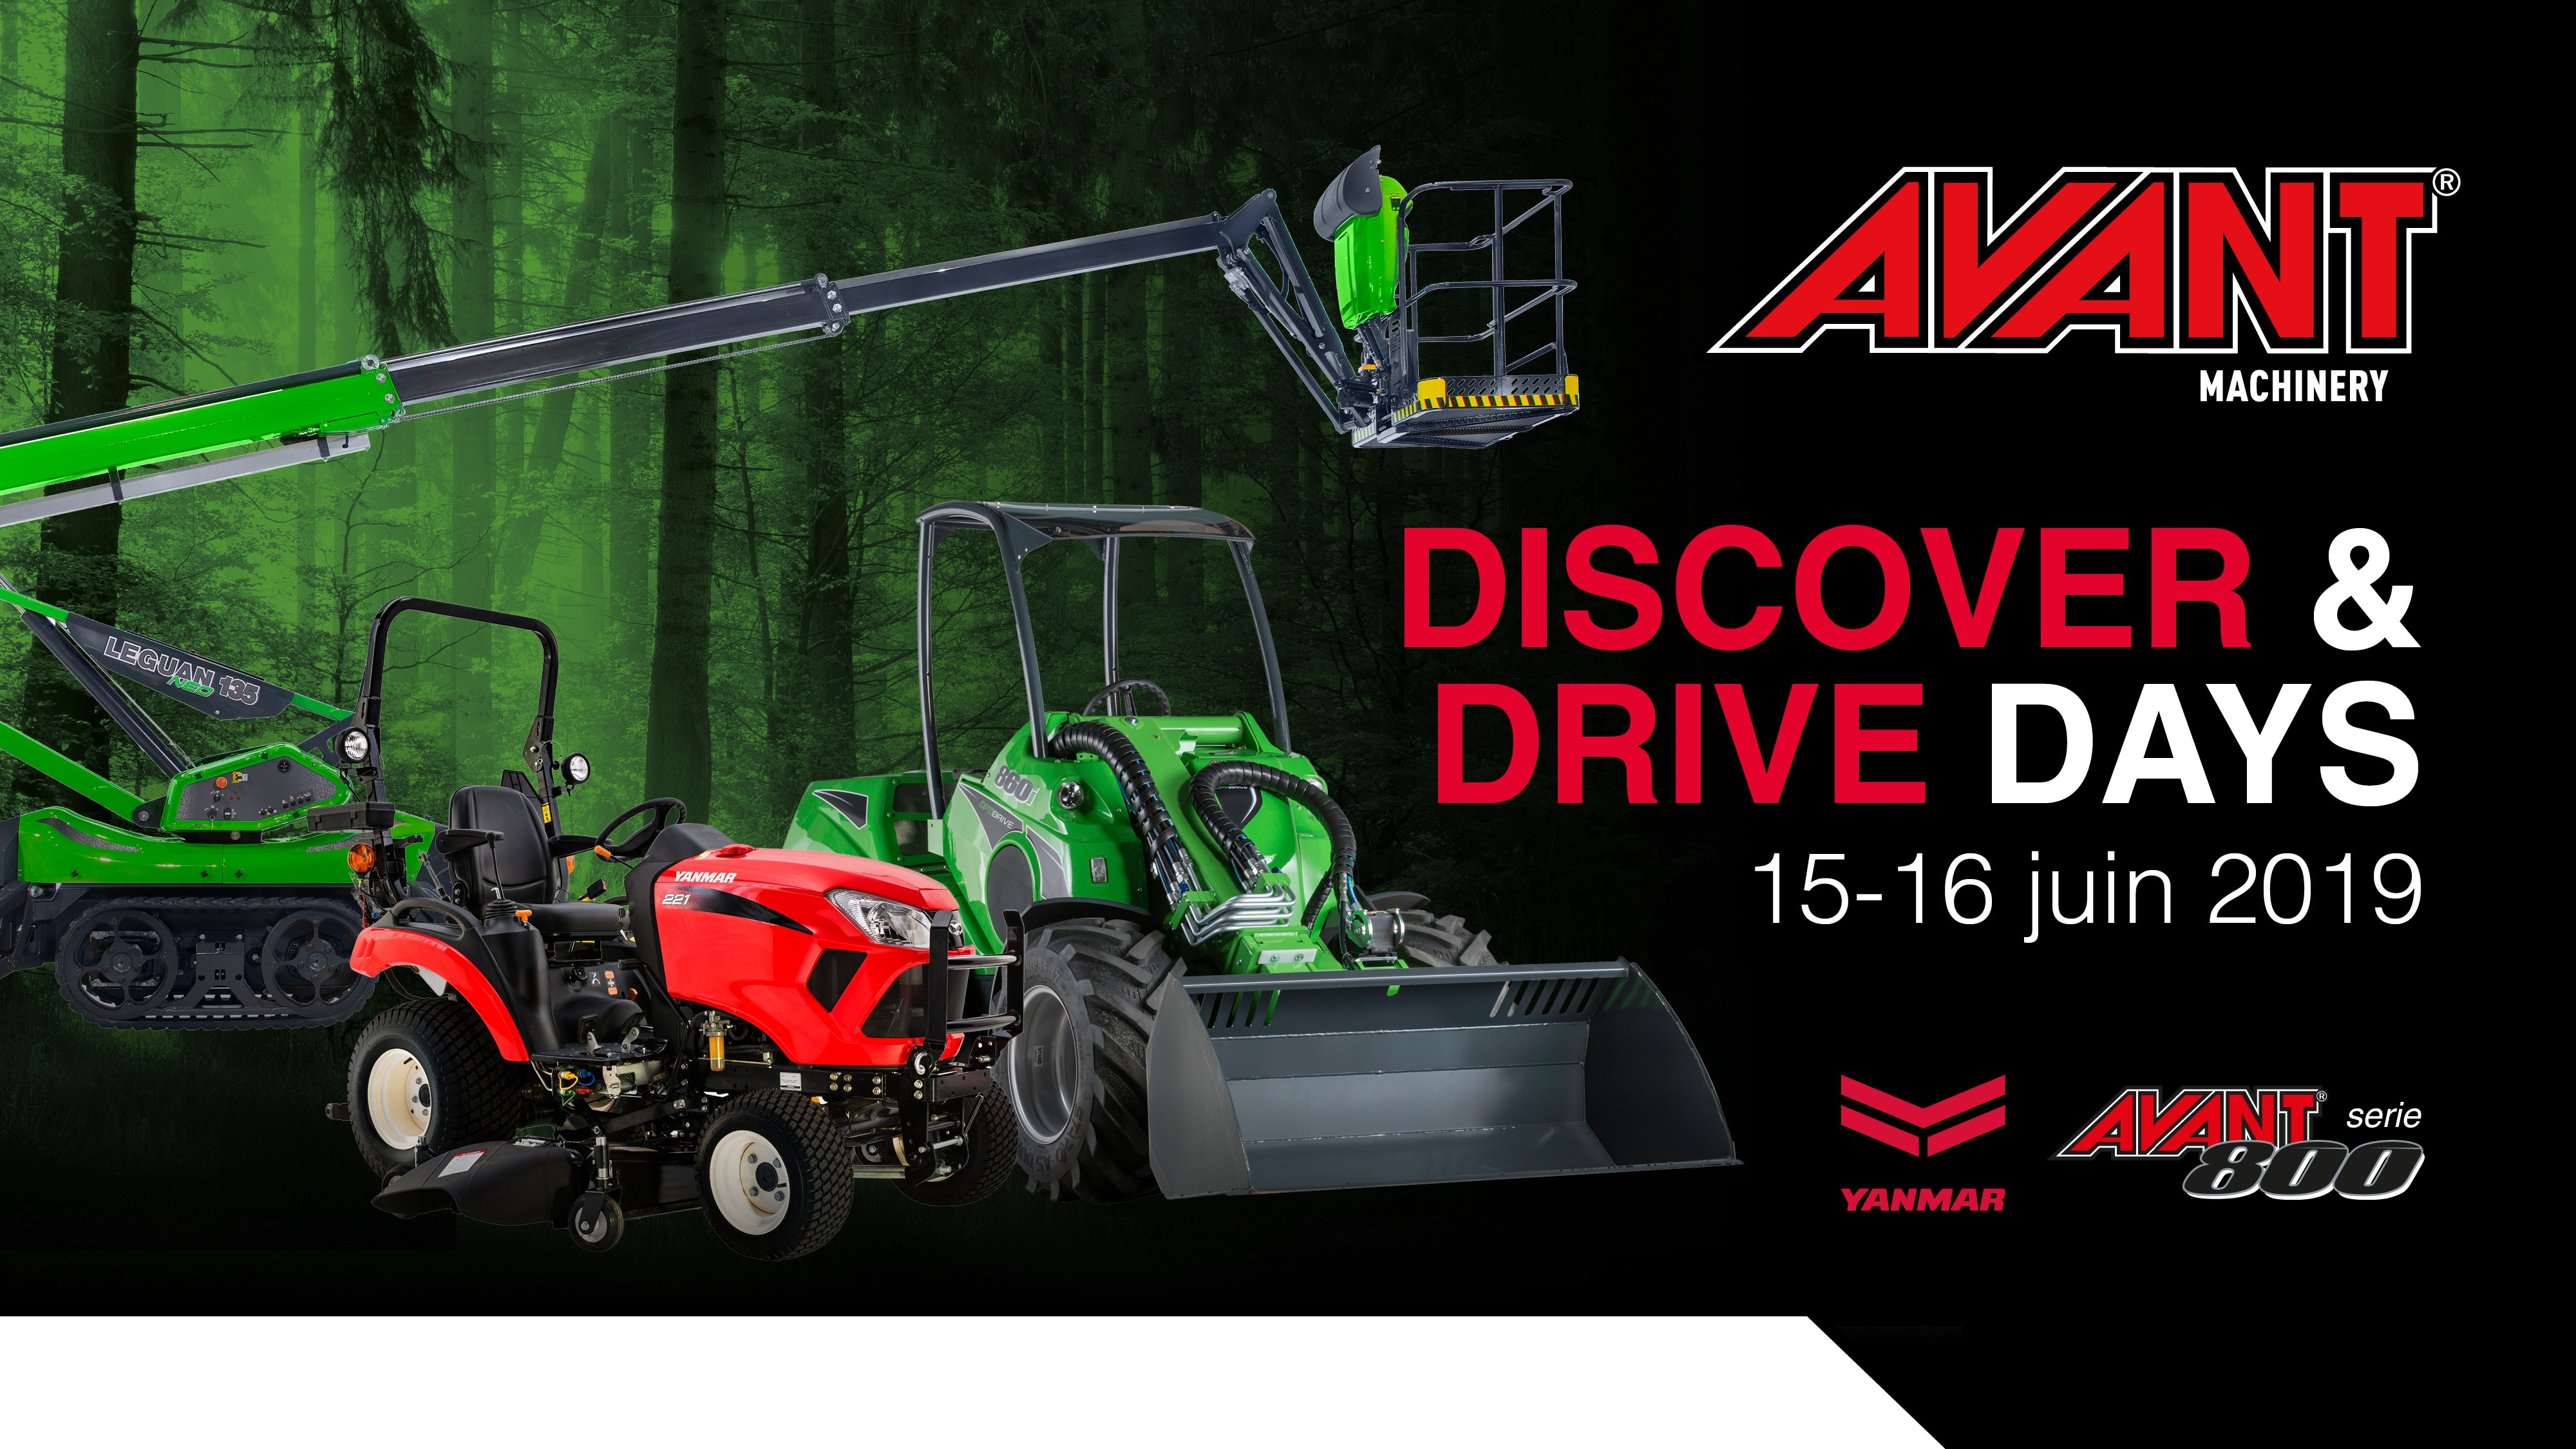 FR-header-Discover-Drive-Days-Avant-Machinery.jpg